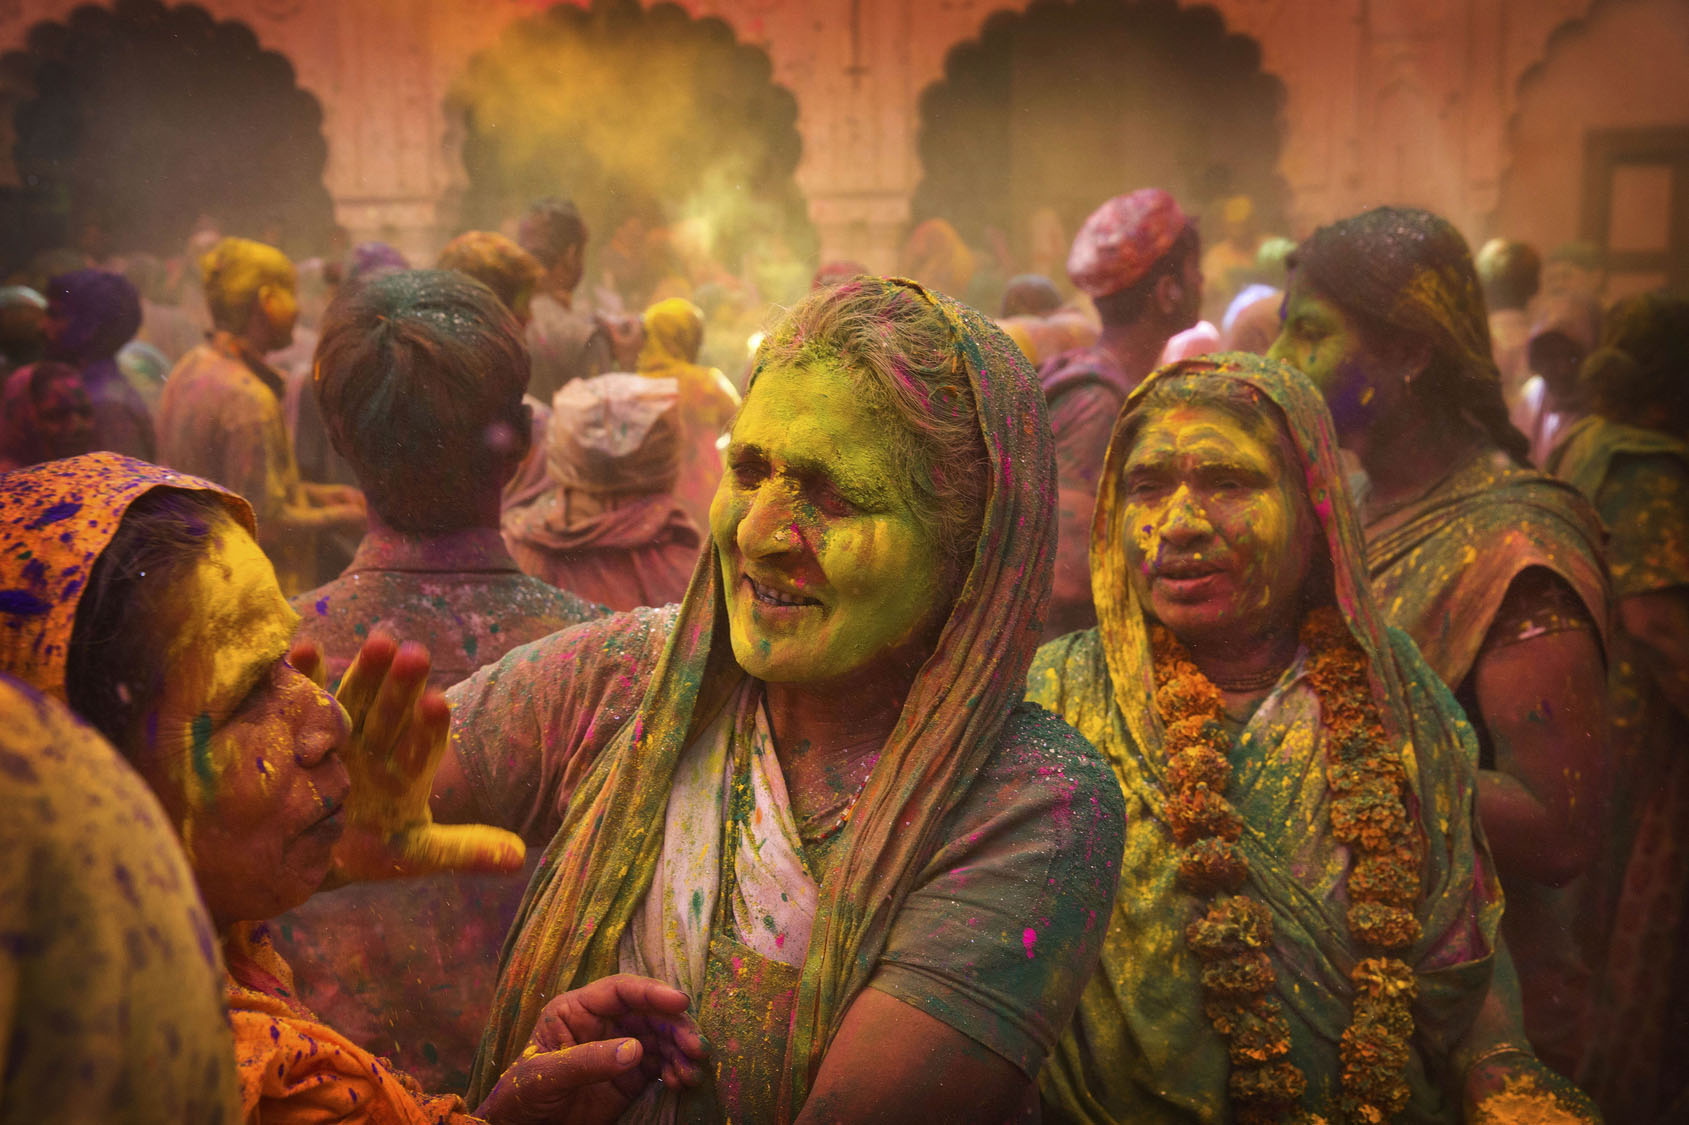 Indian Hindu widows celebrate Holi